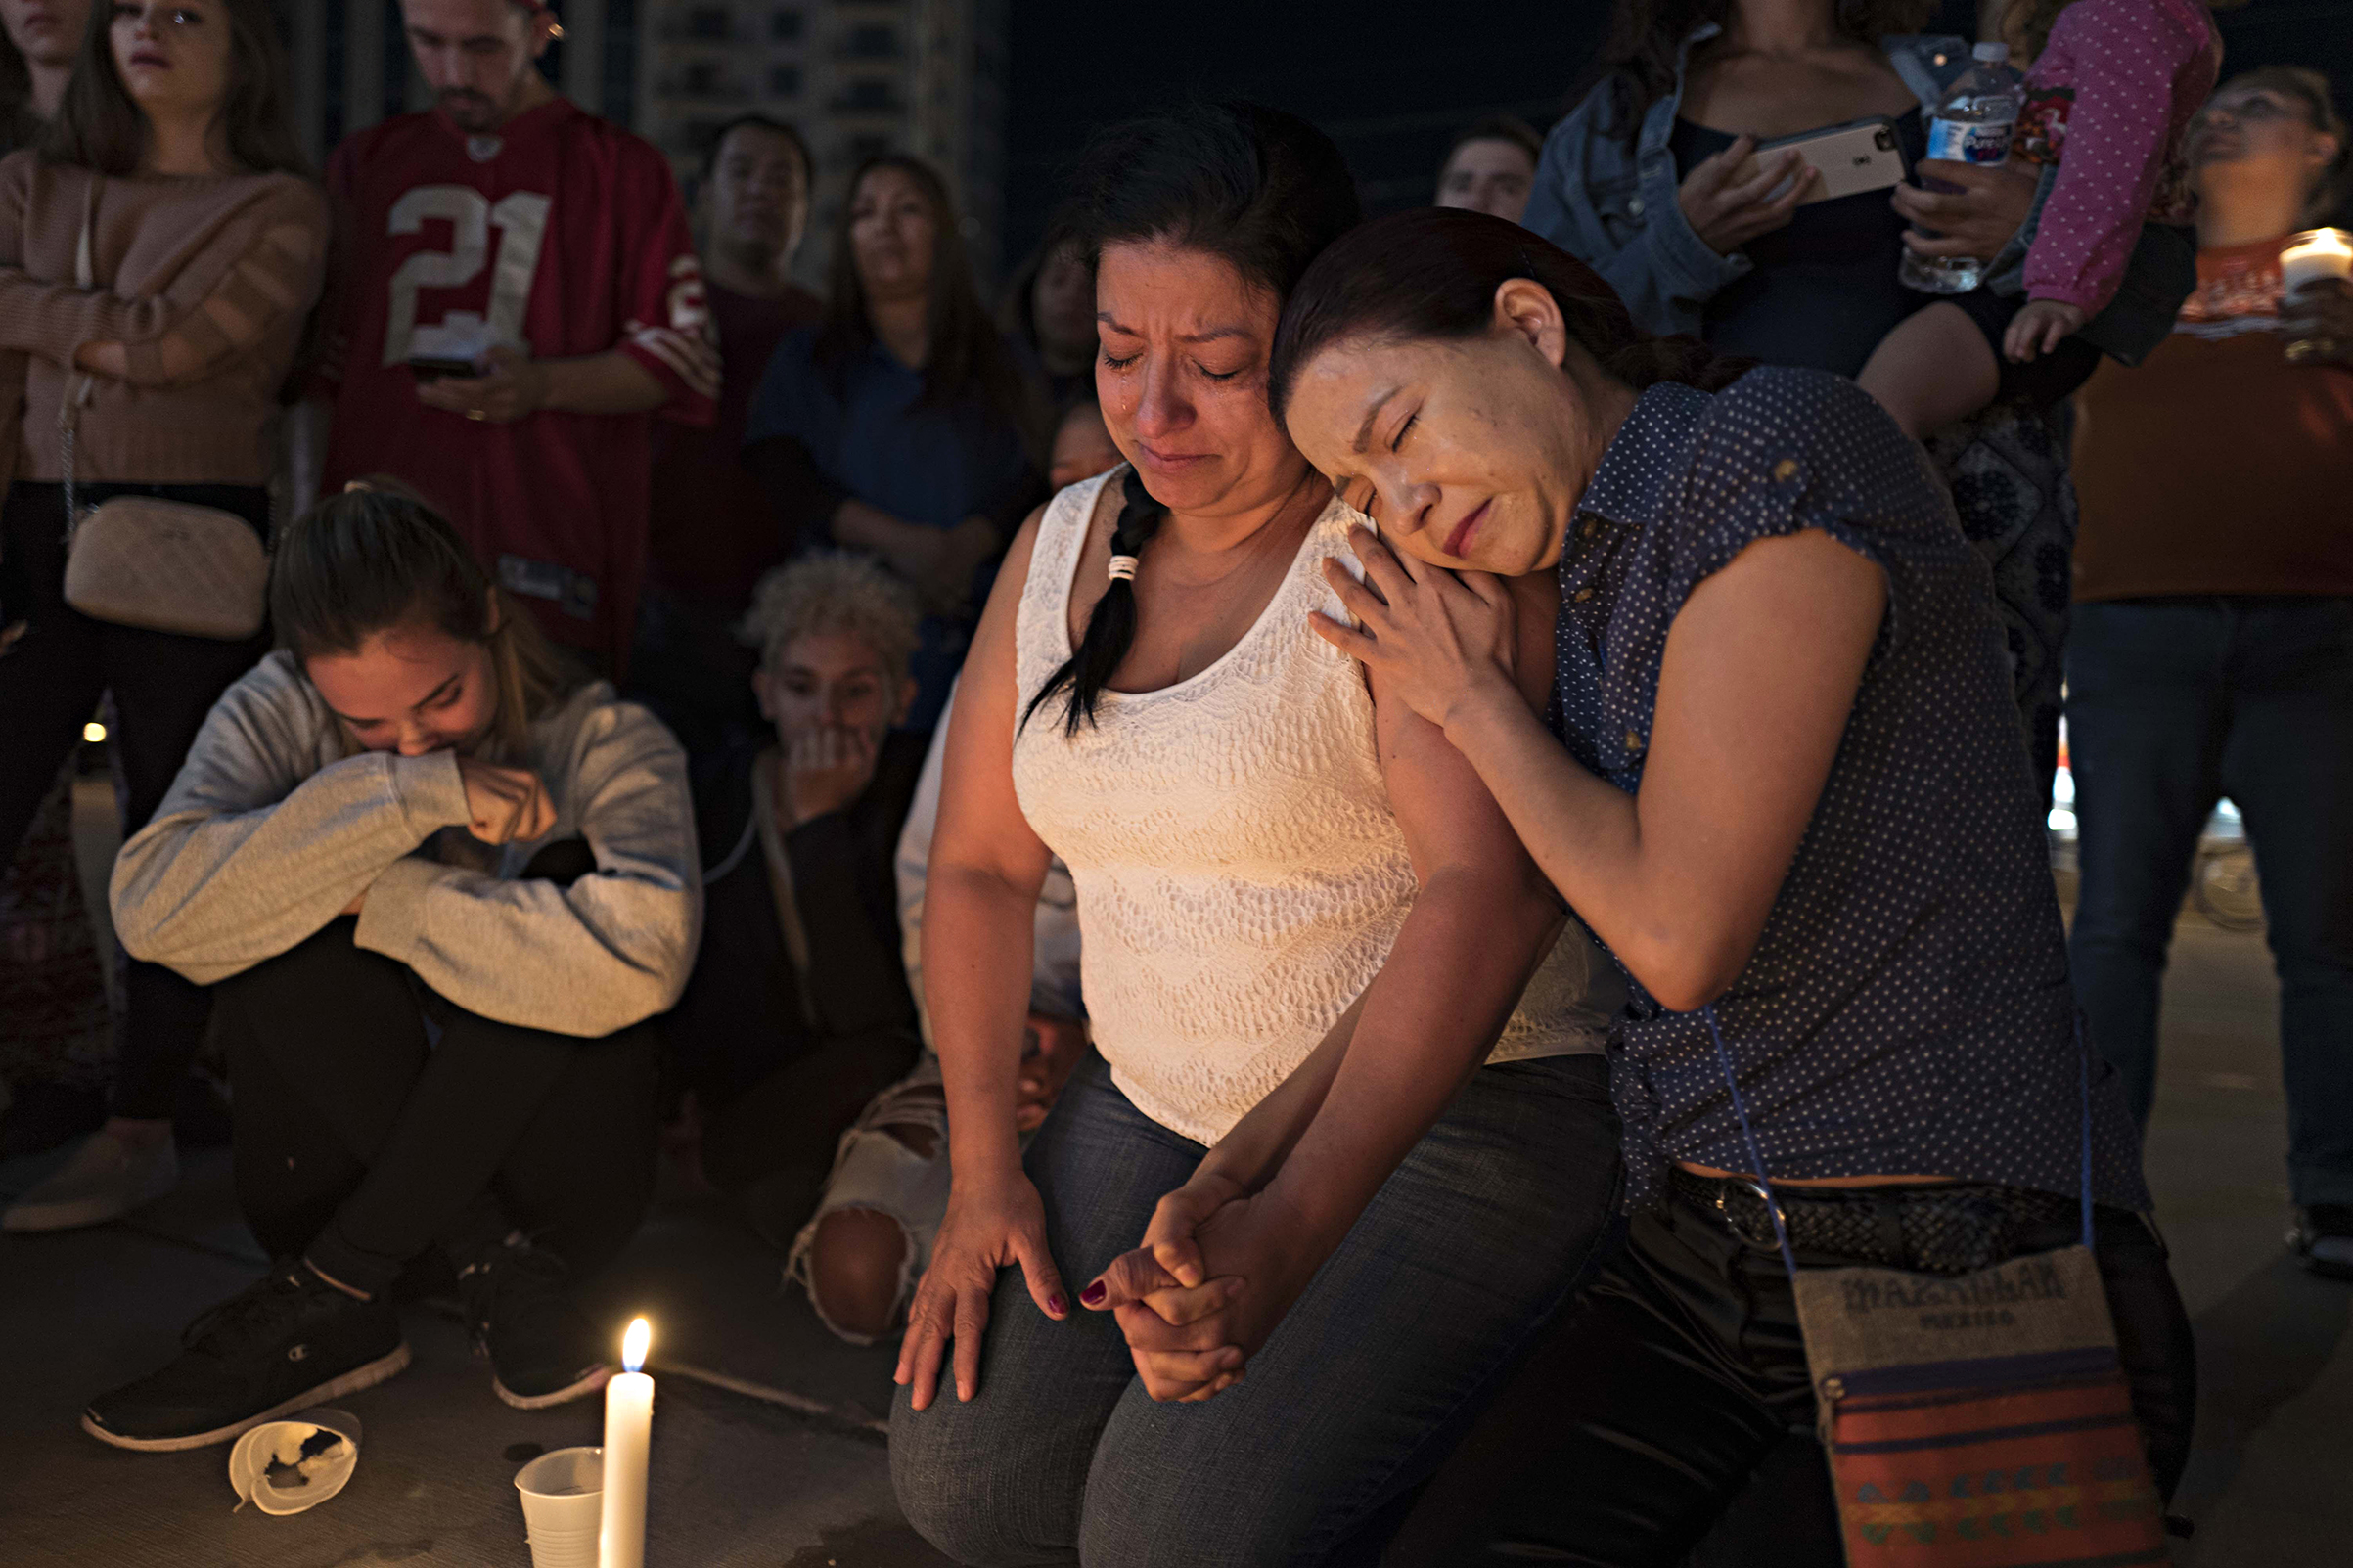 Two women comfort one another at a street vigil, held for victims of the Las Vegas mass shooting, at a main intersection on Las Vegas Boulevard on Oct. 2, 2017.